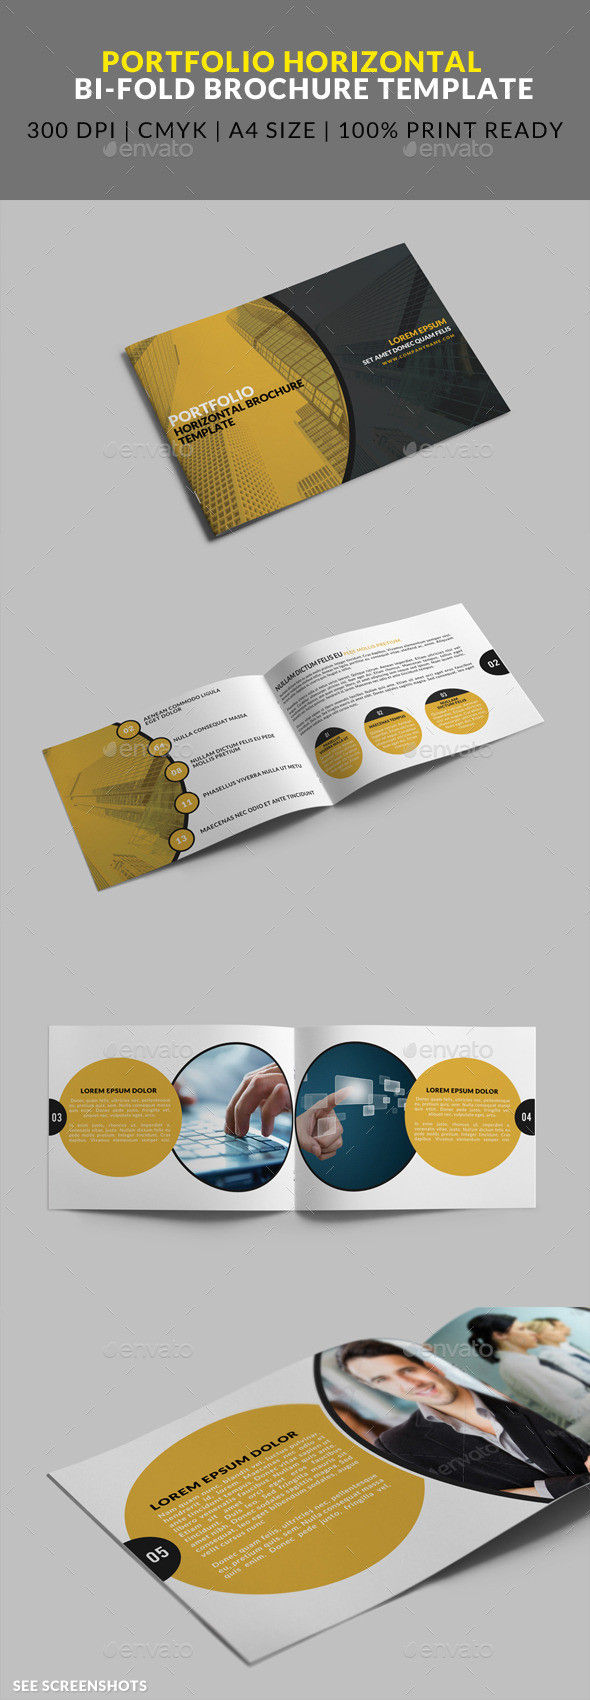 8 page a4 horizontal portfolio bifold brochure template preview